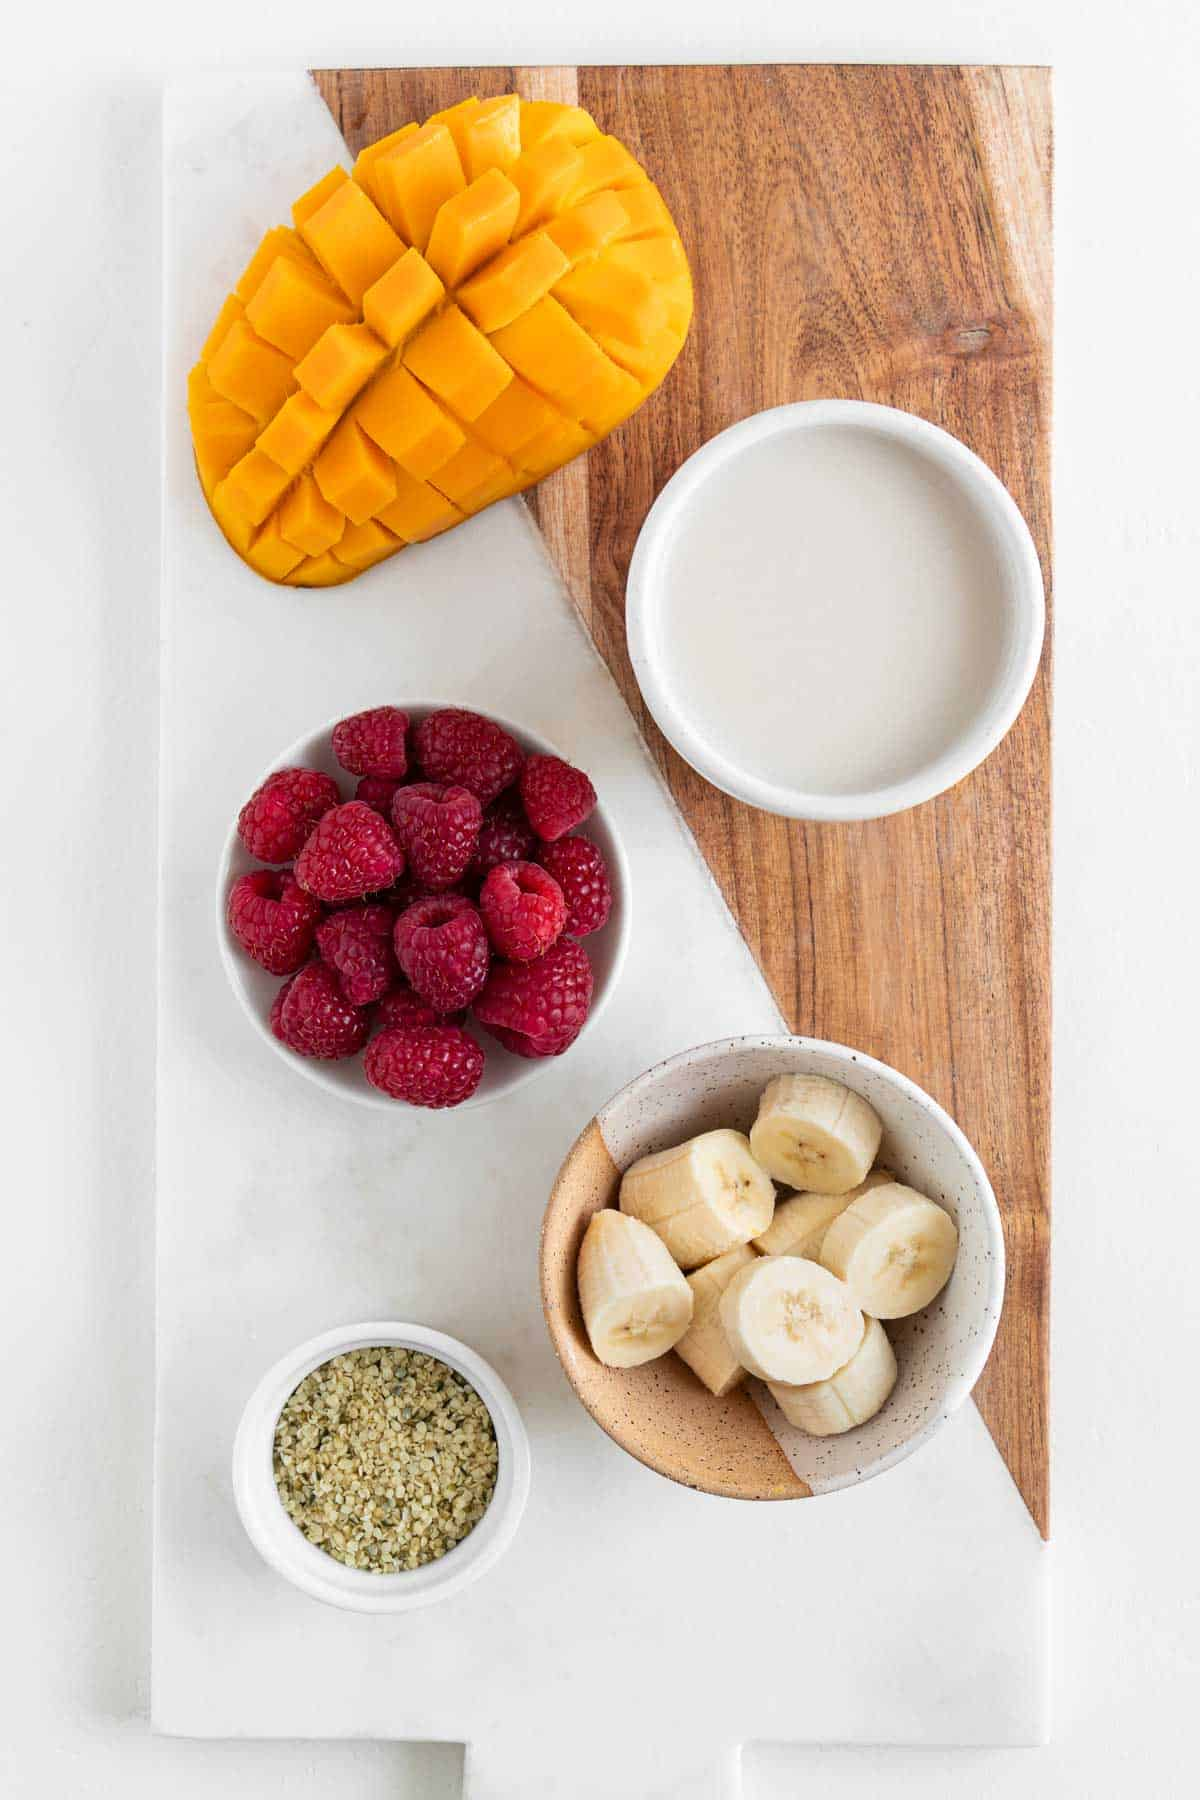 a marble and wood cutting board topped with a glass of coconut milk, bananas, berries, and hemp seeds